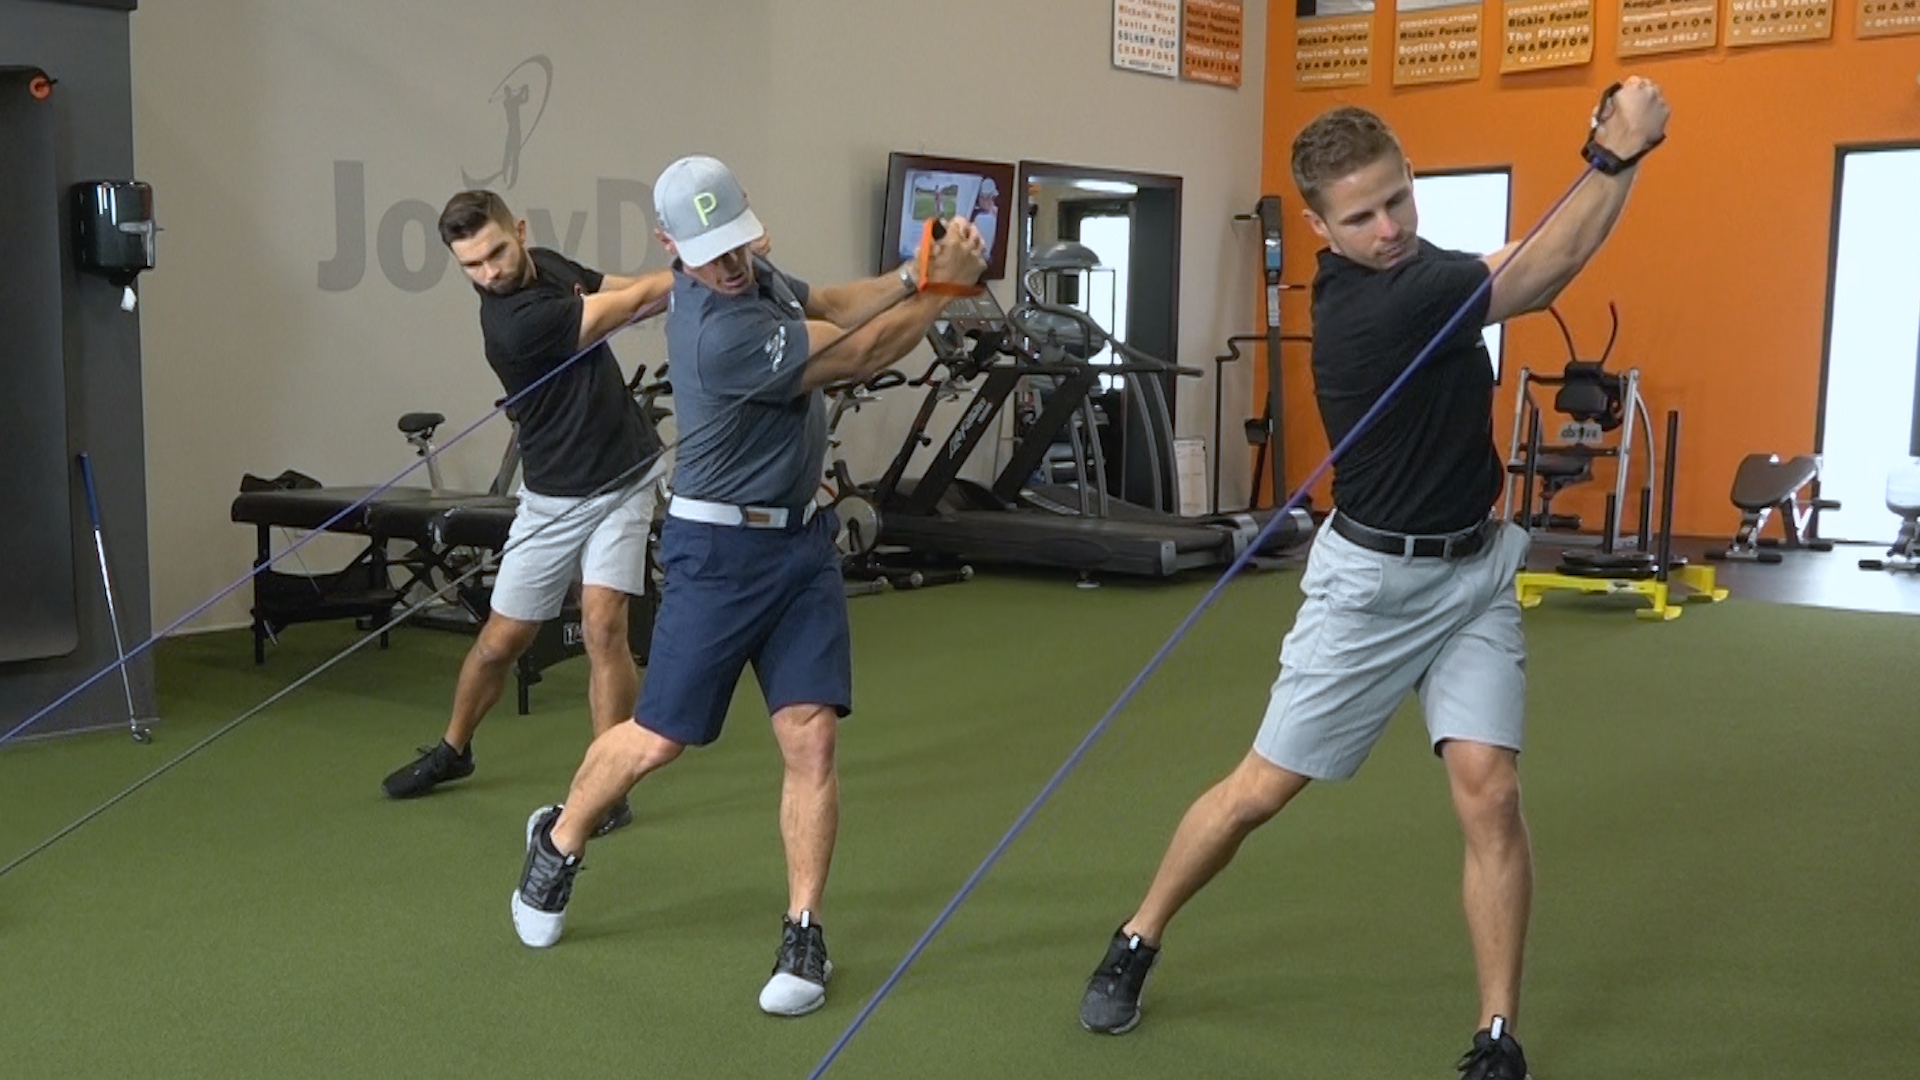 side-twist-resistance-bands golf fitness exercise